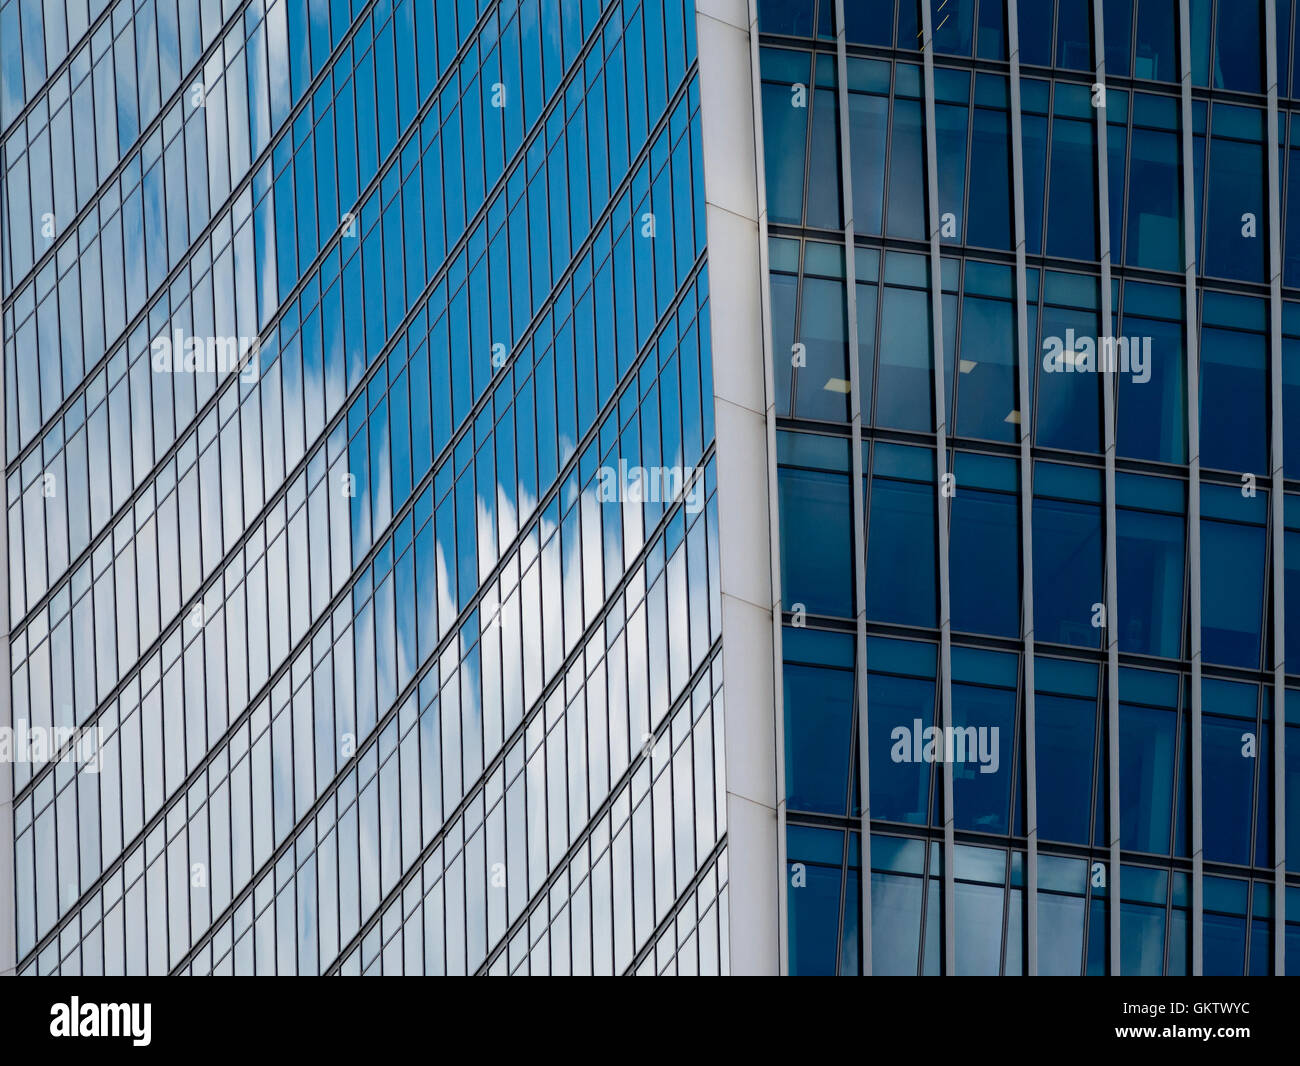 The Walkie-Talkie,20 Fenchurch Street, City of London, London, Britain - Stock Image